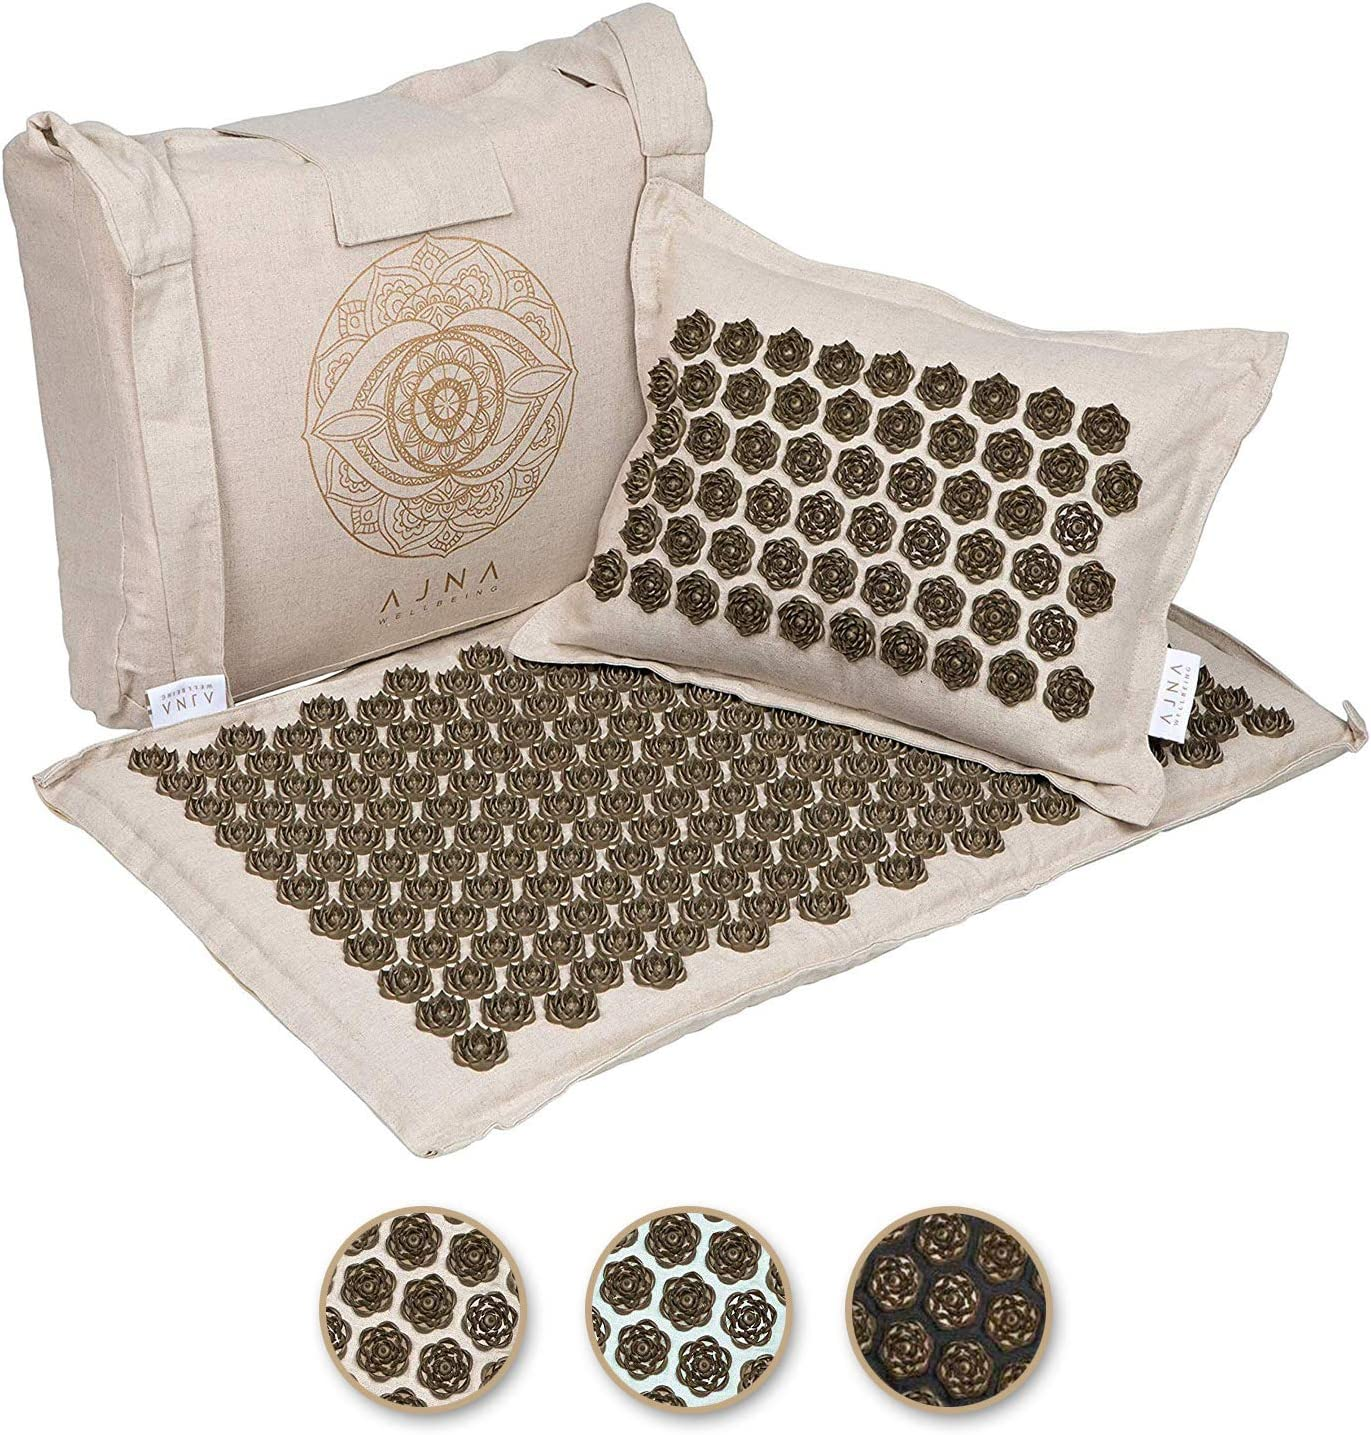 Ajna Acupressure Mat and Pillow Set - Natural Organic Linen Cotton Acupuncture Mat & Bag - Back Pain Relief, Neck Pain Relief, Stress Reliever, Reflexology, Sciatica, Trigger Point Therapy - Eco Luxe: Health & Personal Care